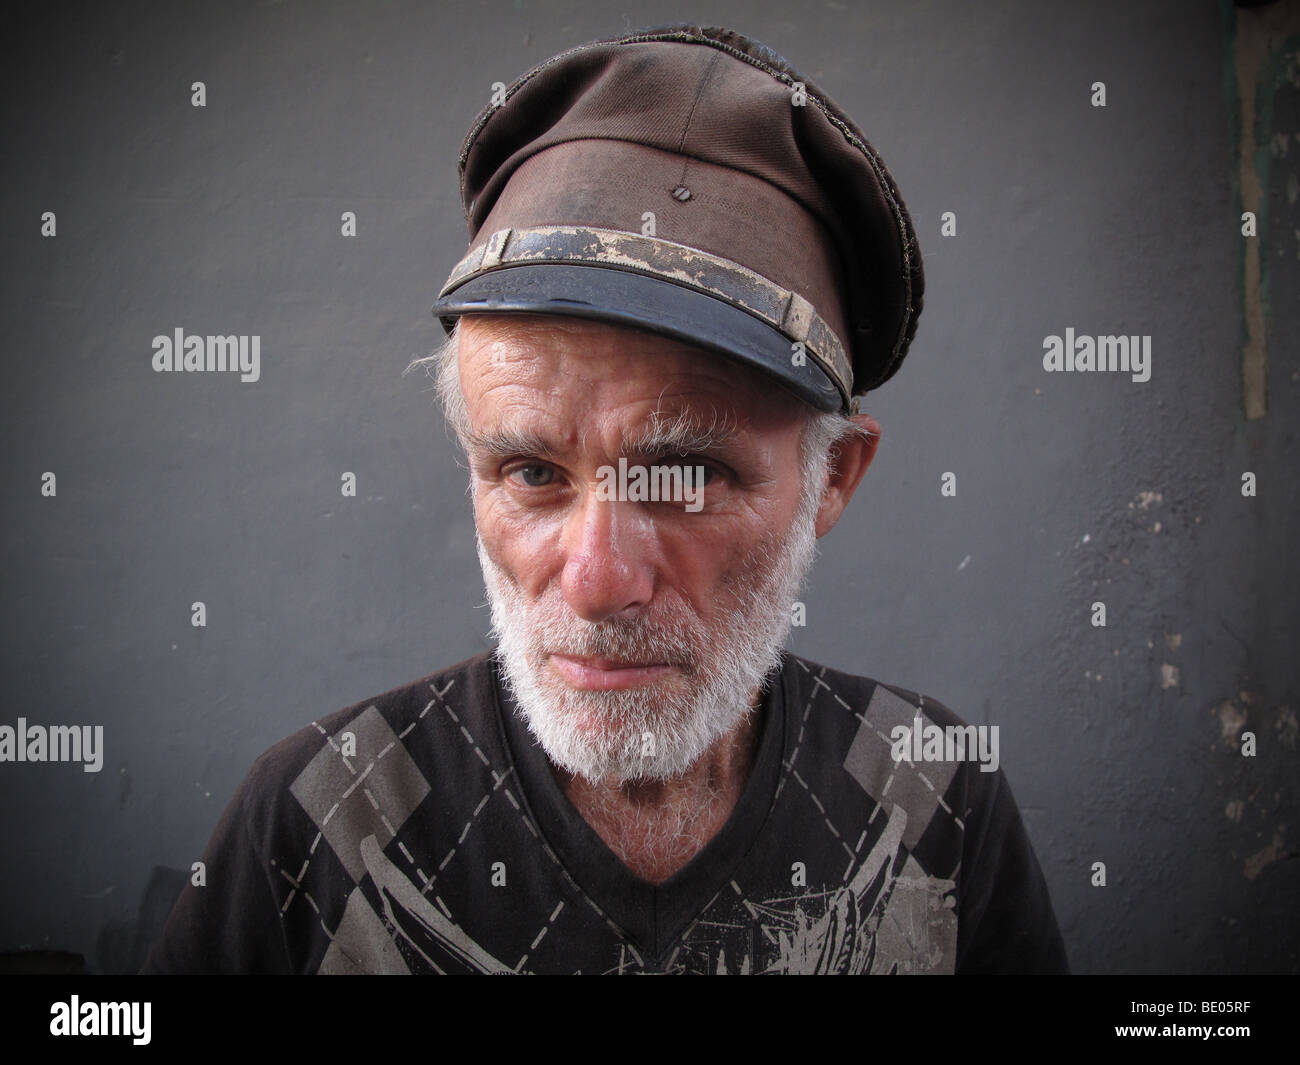 Former Ussr Stock Photos & Former Ussr Stock Images - Alamy